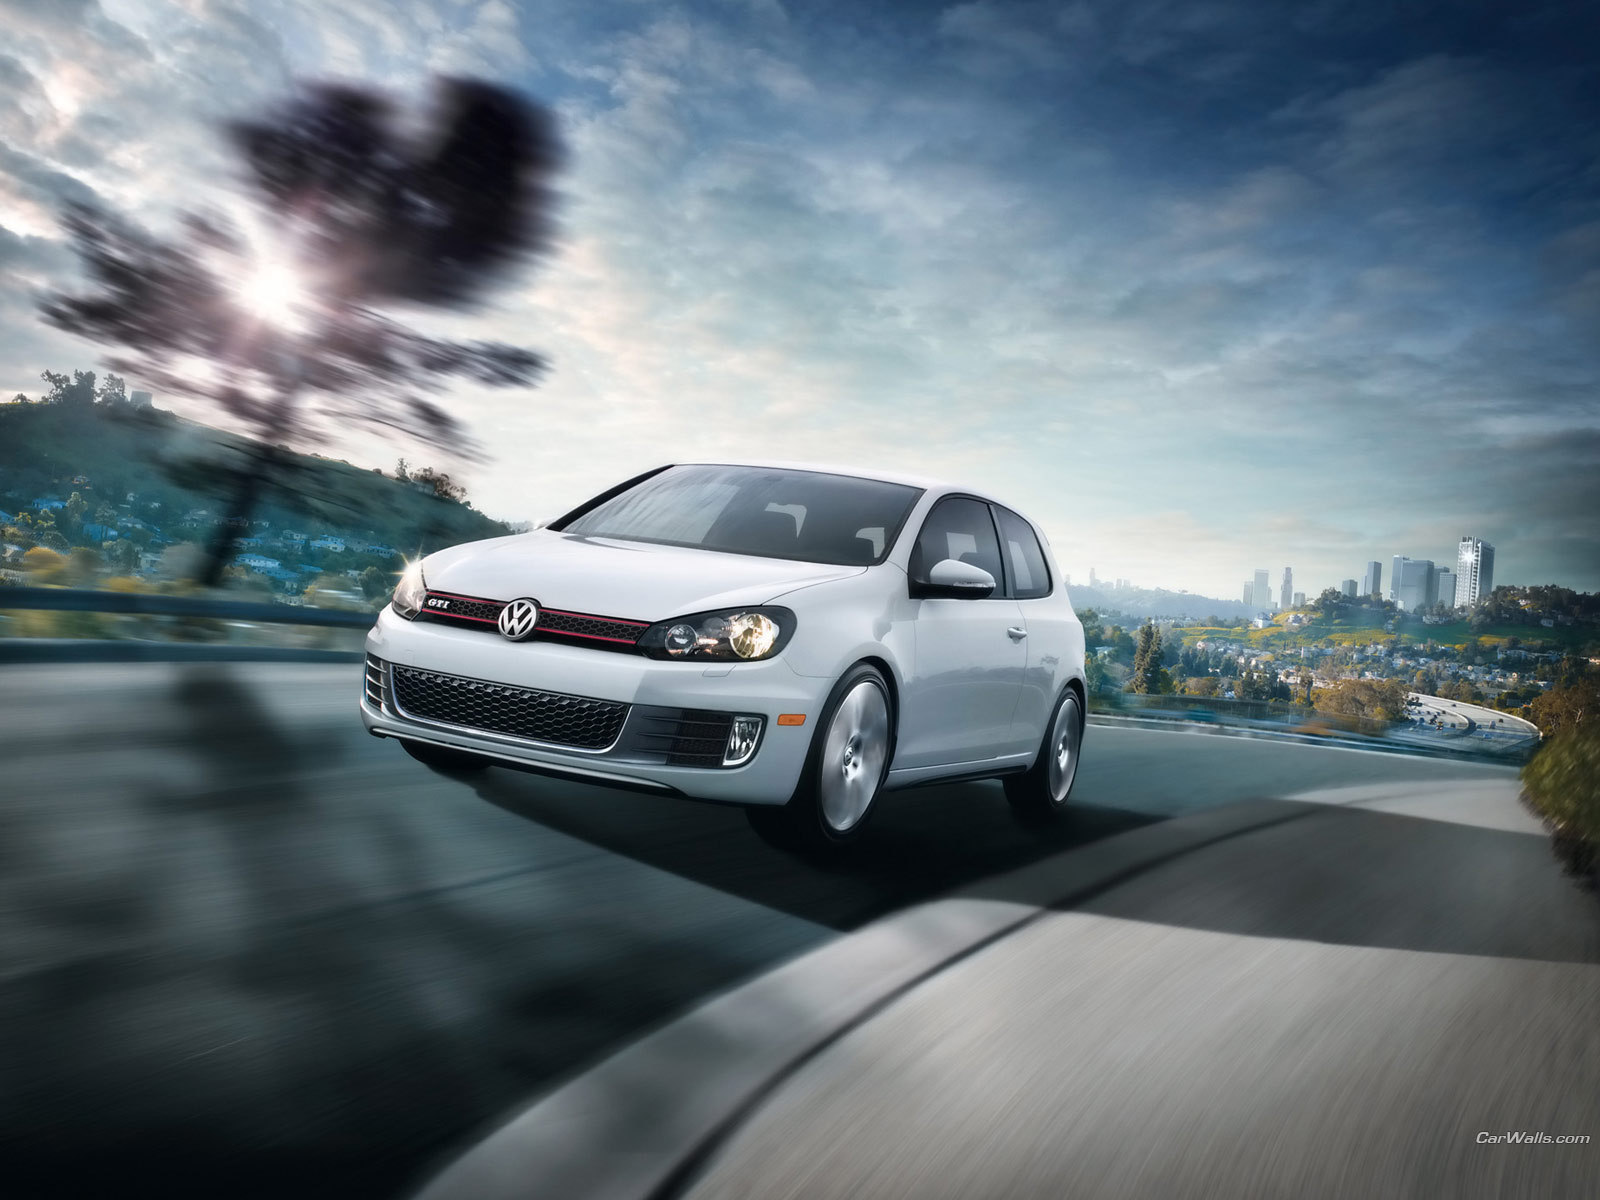 25 Volkswagen Wallpaper Pictures